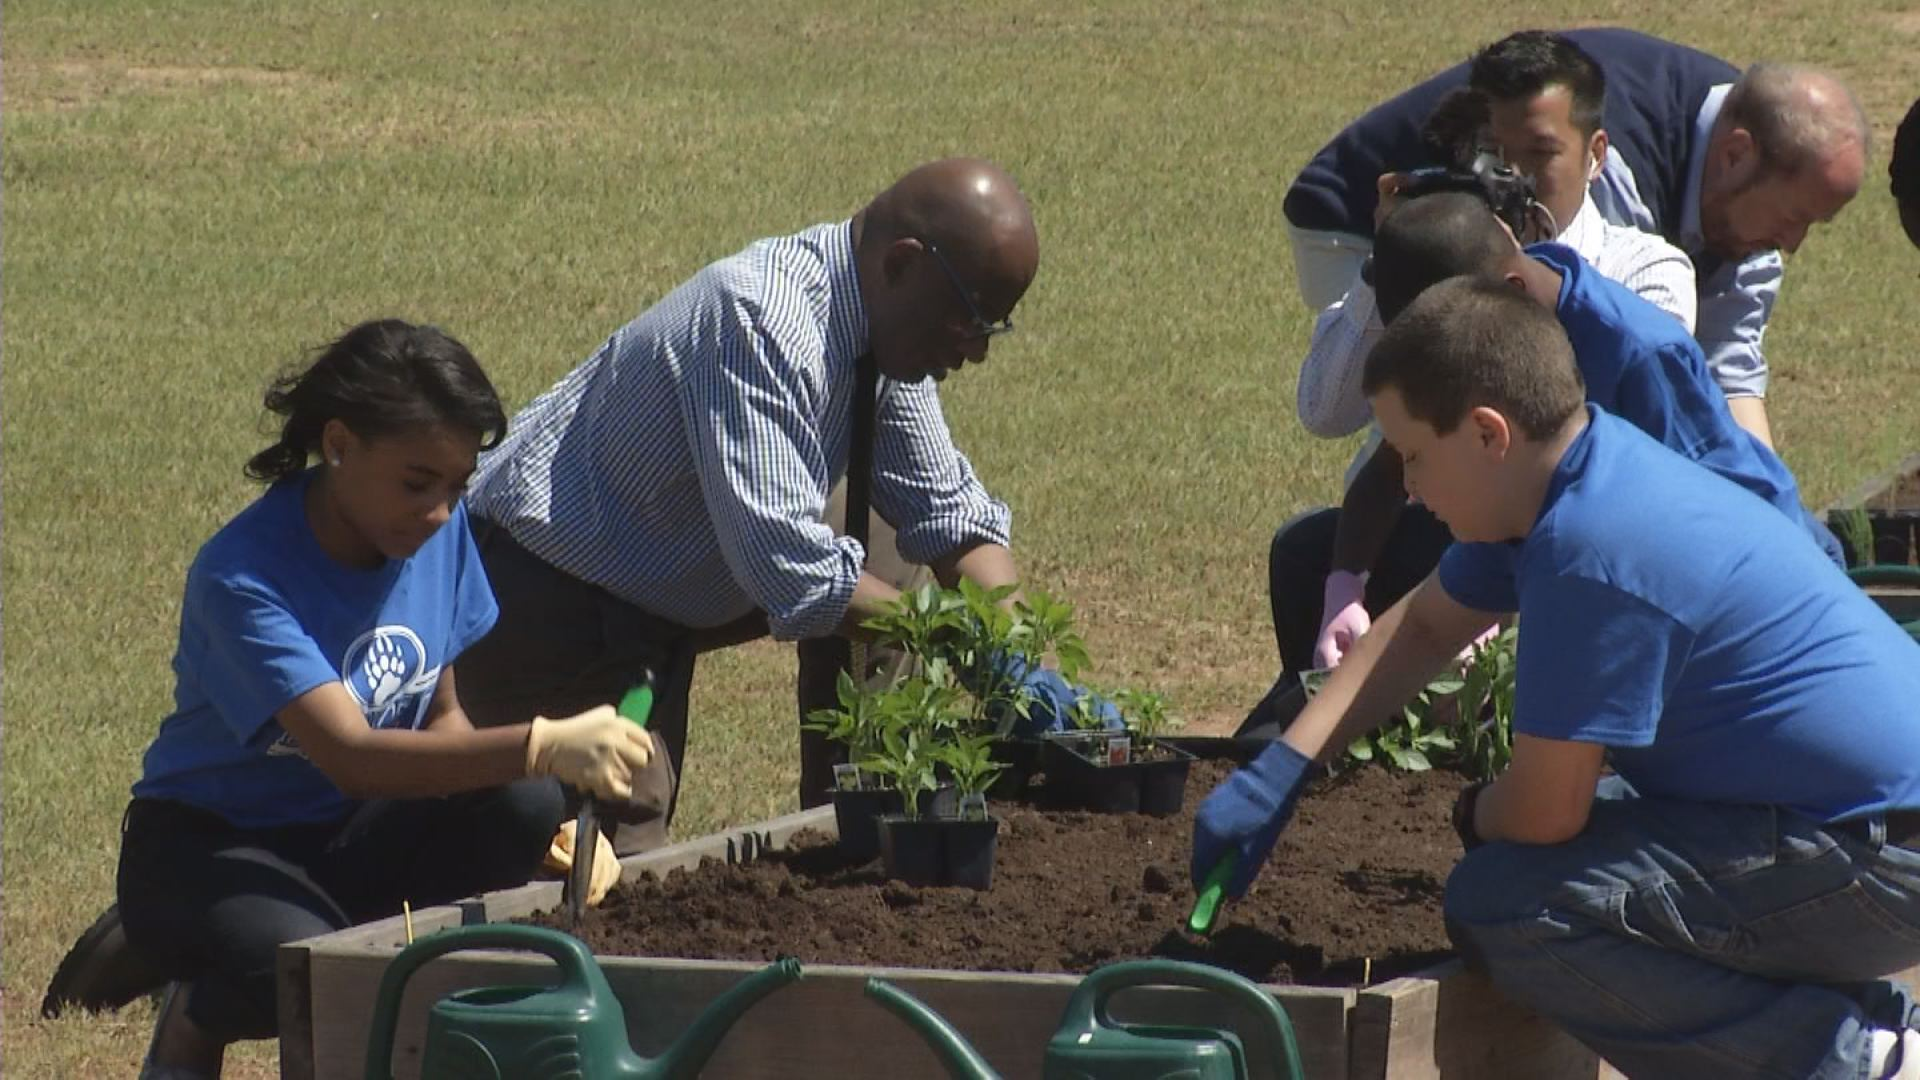 Al Roker helps plant cucumbers and peppers at the rural school's garden.